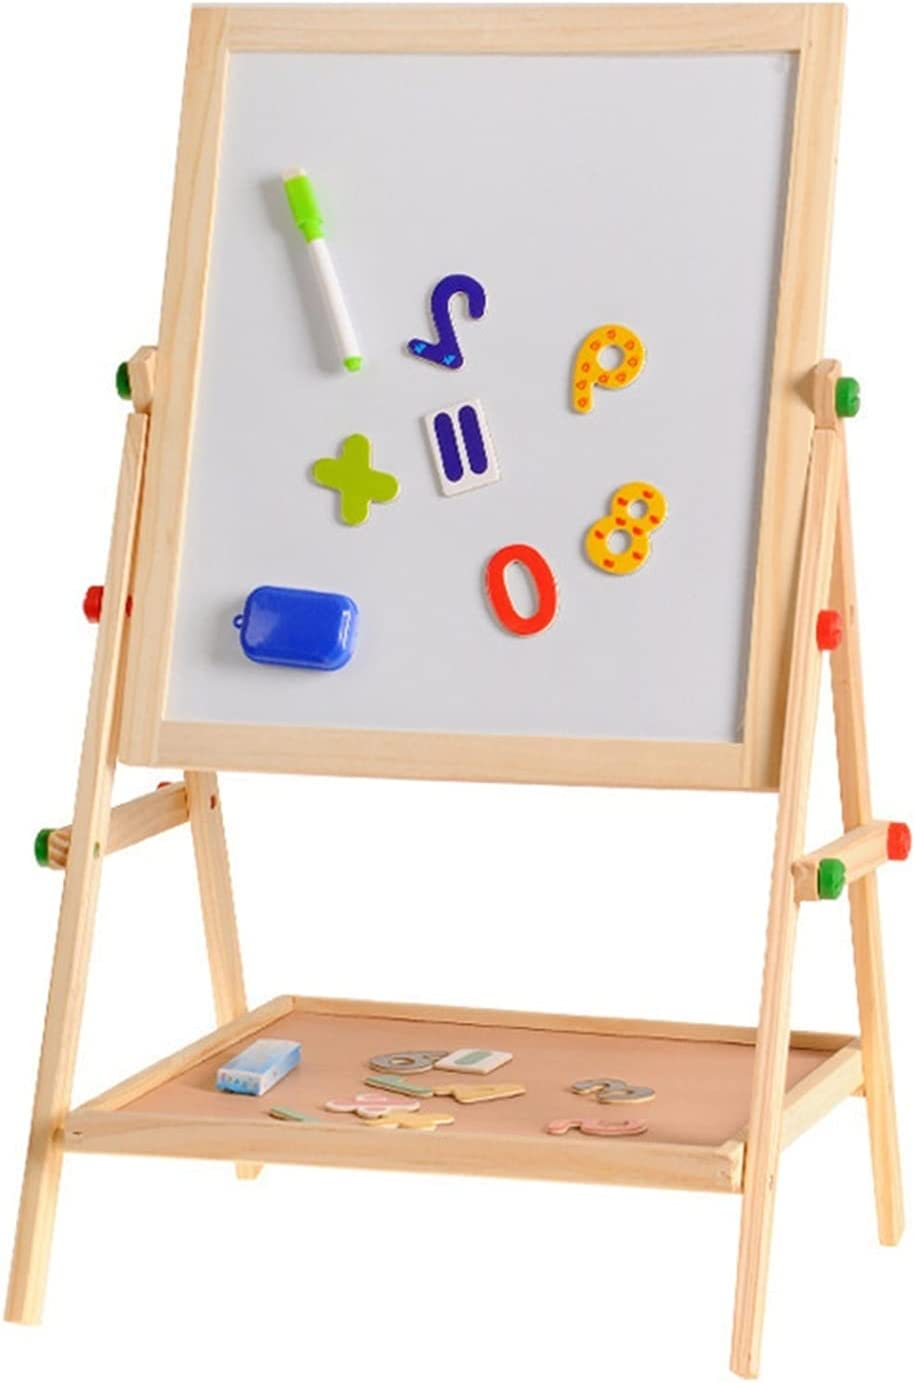 JIAQUAN-SHOP Easel Wooden Drawing S Whiteboard Blackboard New Safety and trust Orleans Mall Double